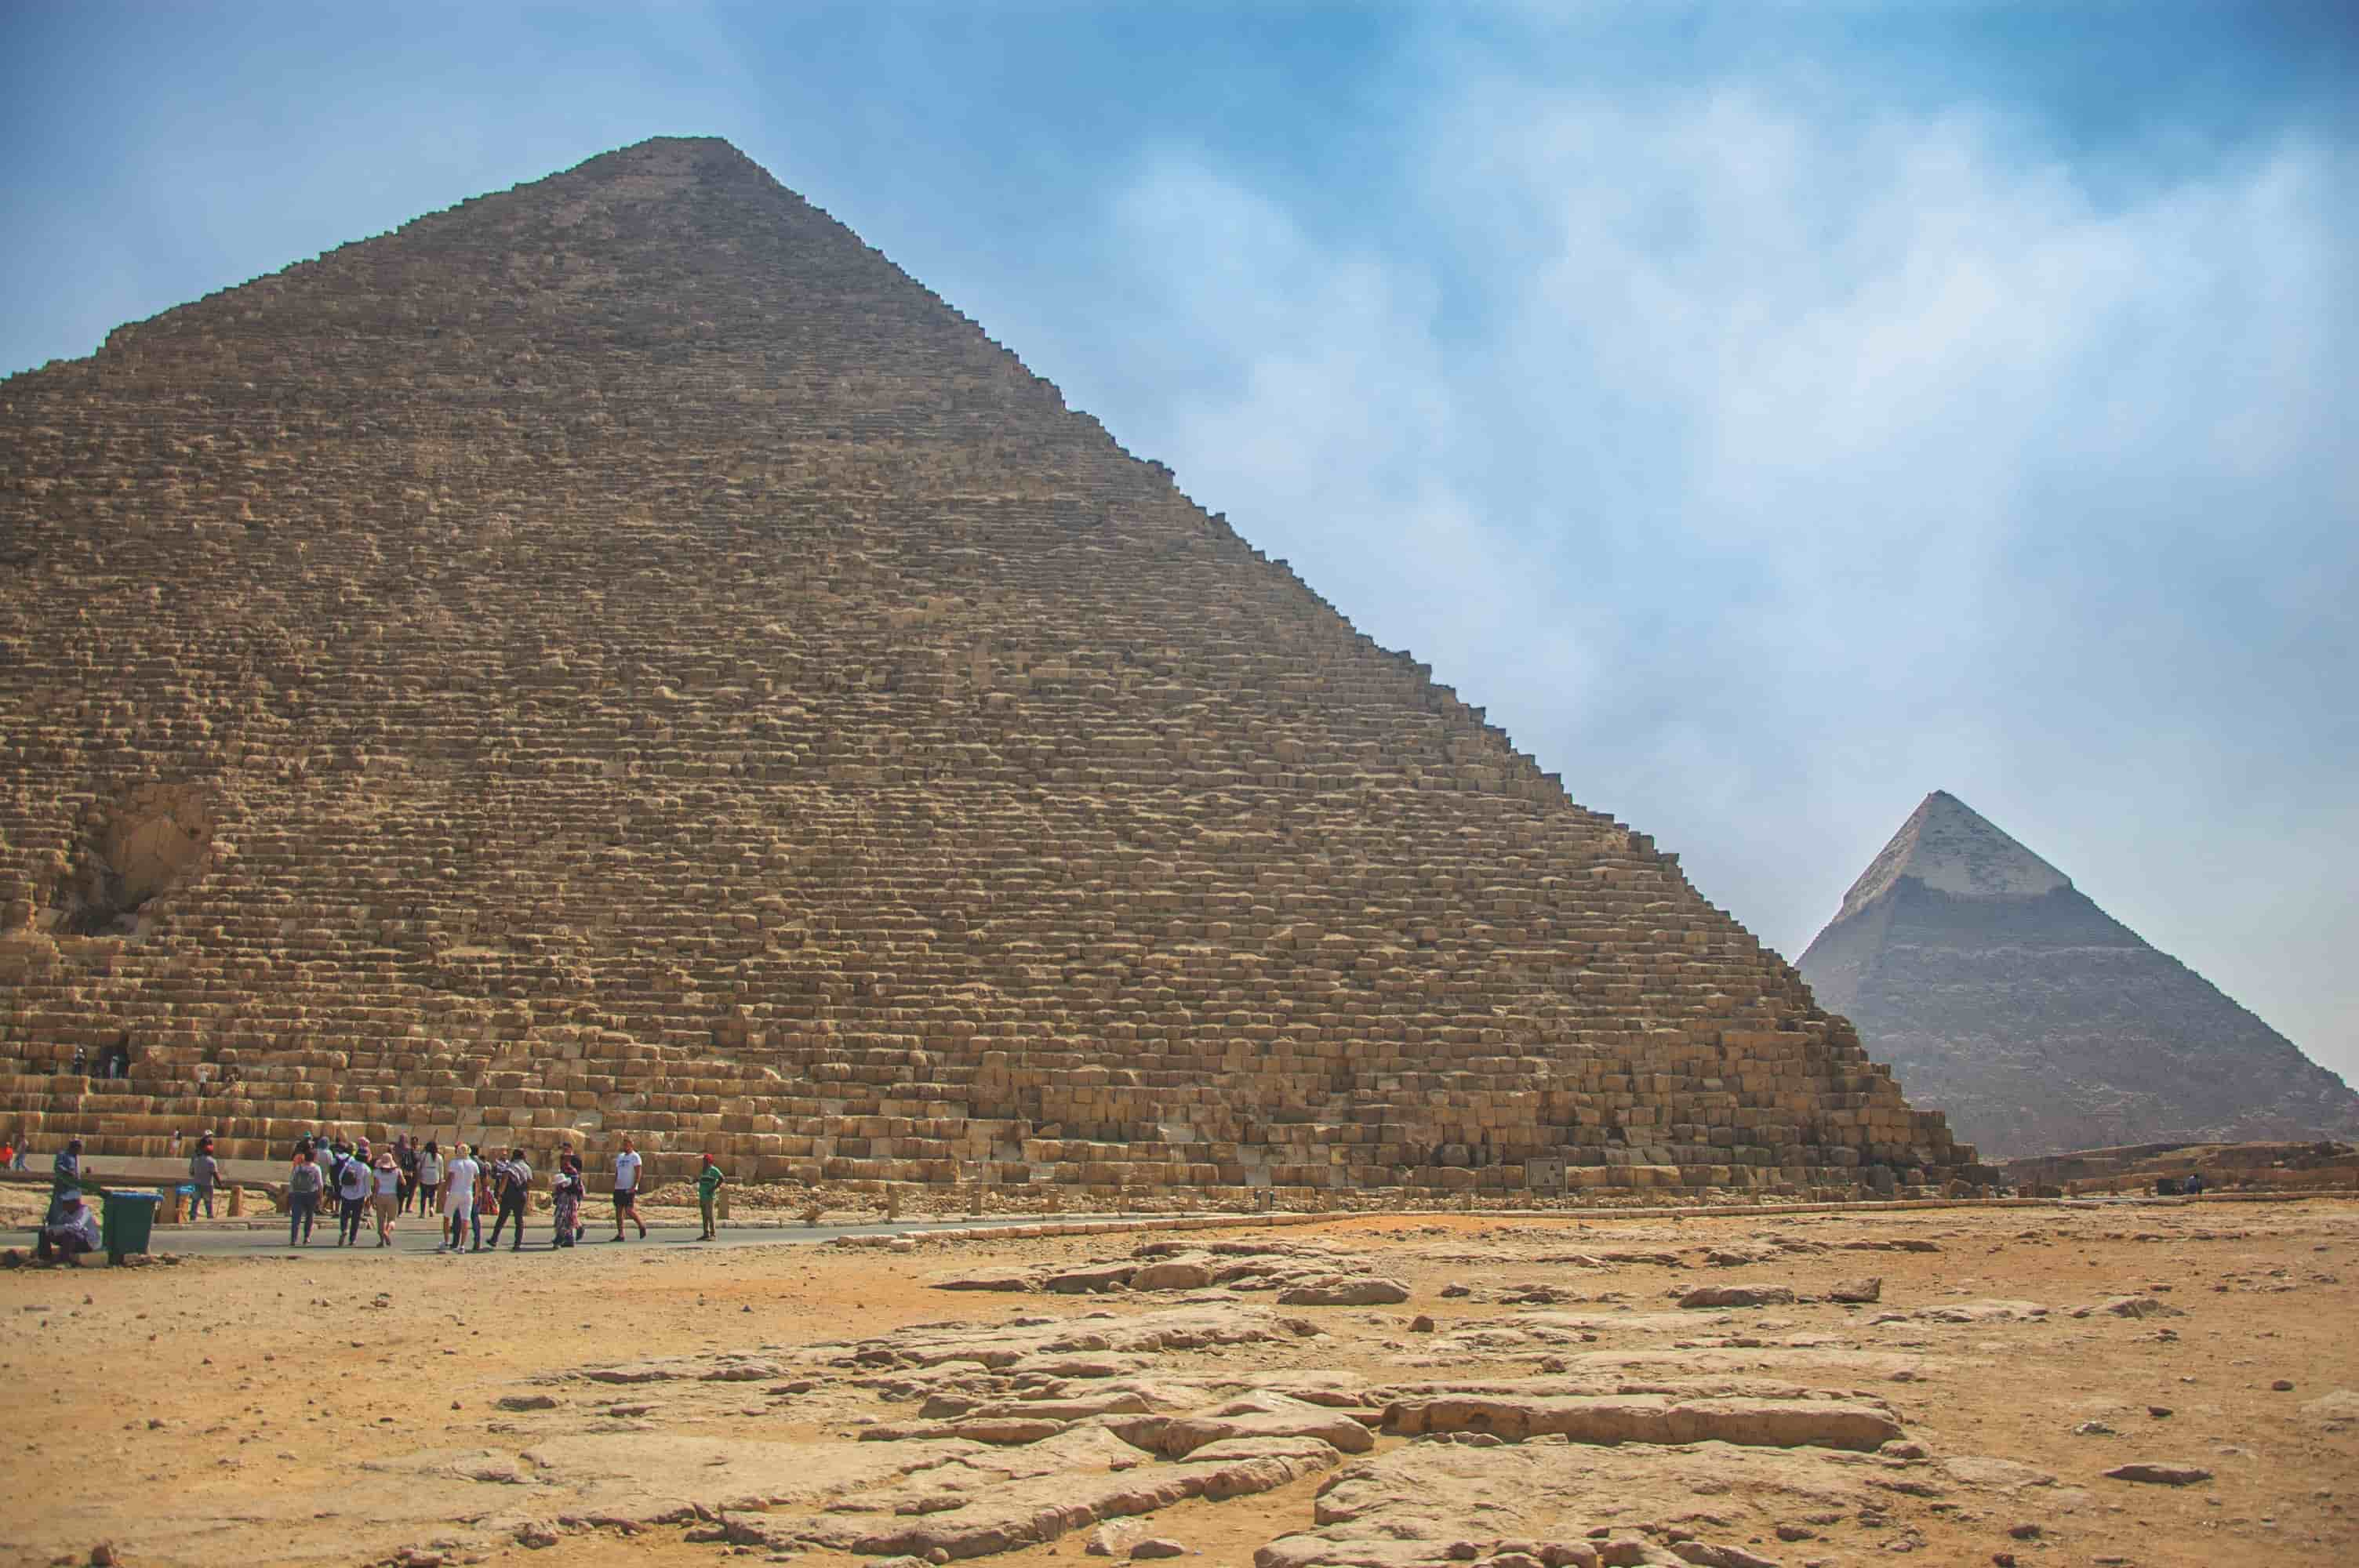 The Great Pyramid of Giza in the afternoon